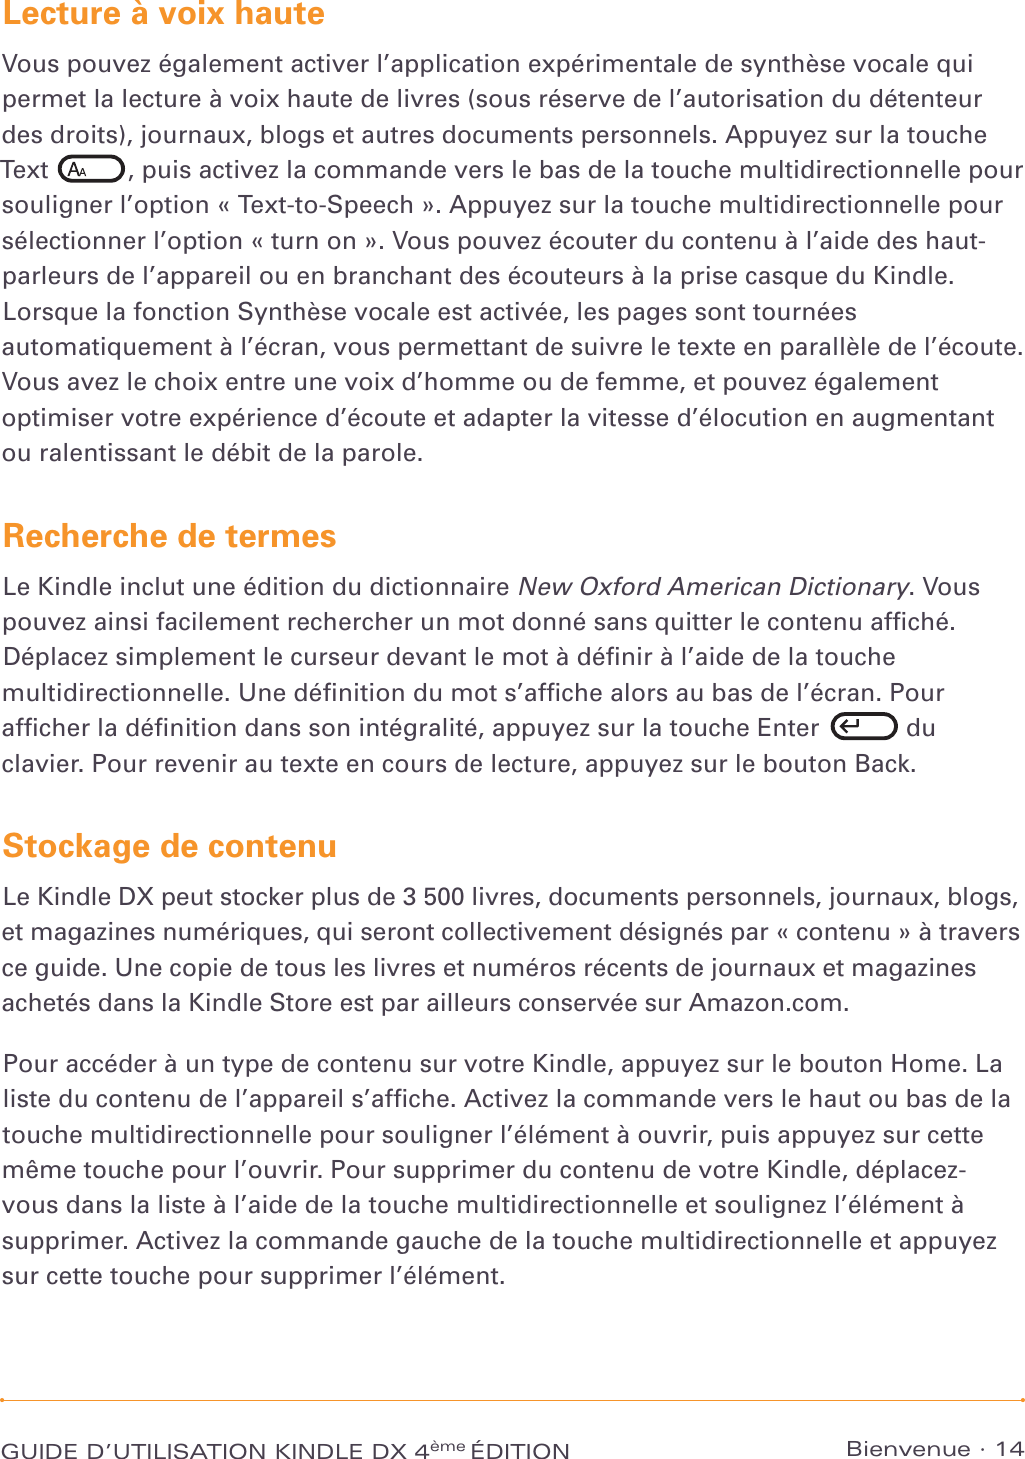 Amazon Kindle Dx User S Guide 4th Edition French